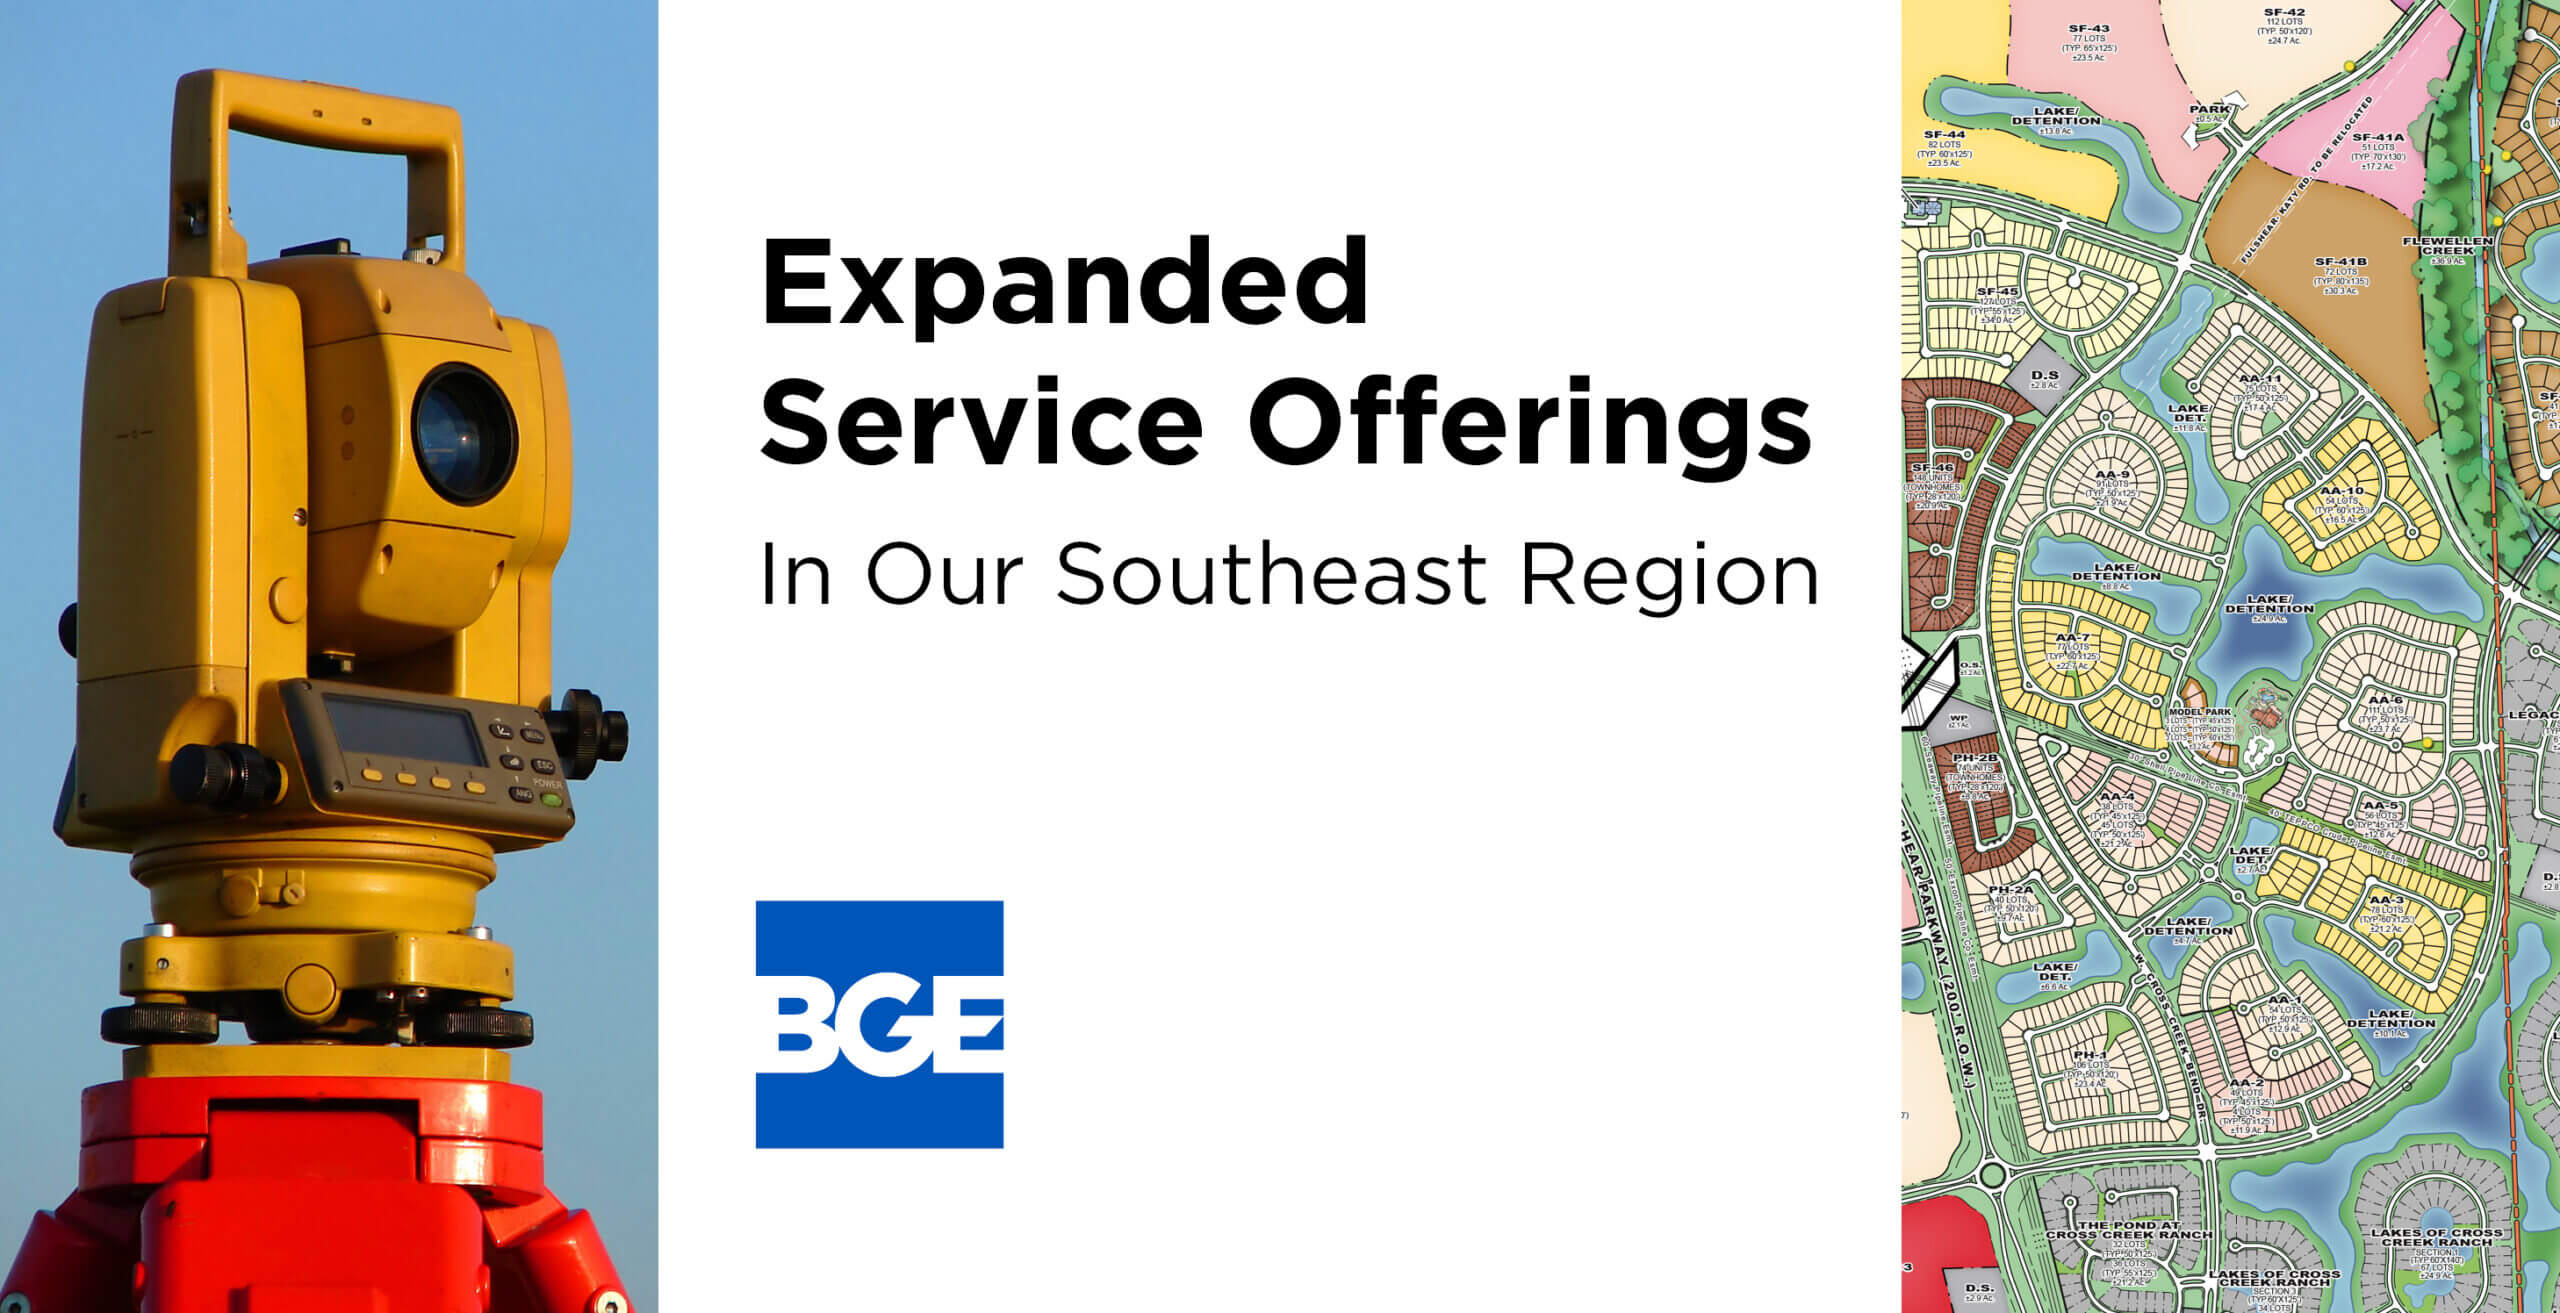 BGE Expands Service Offerings in the Southeast